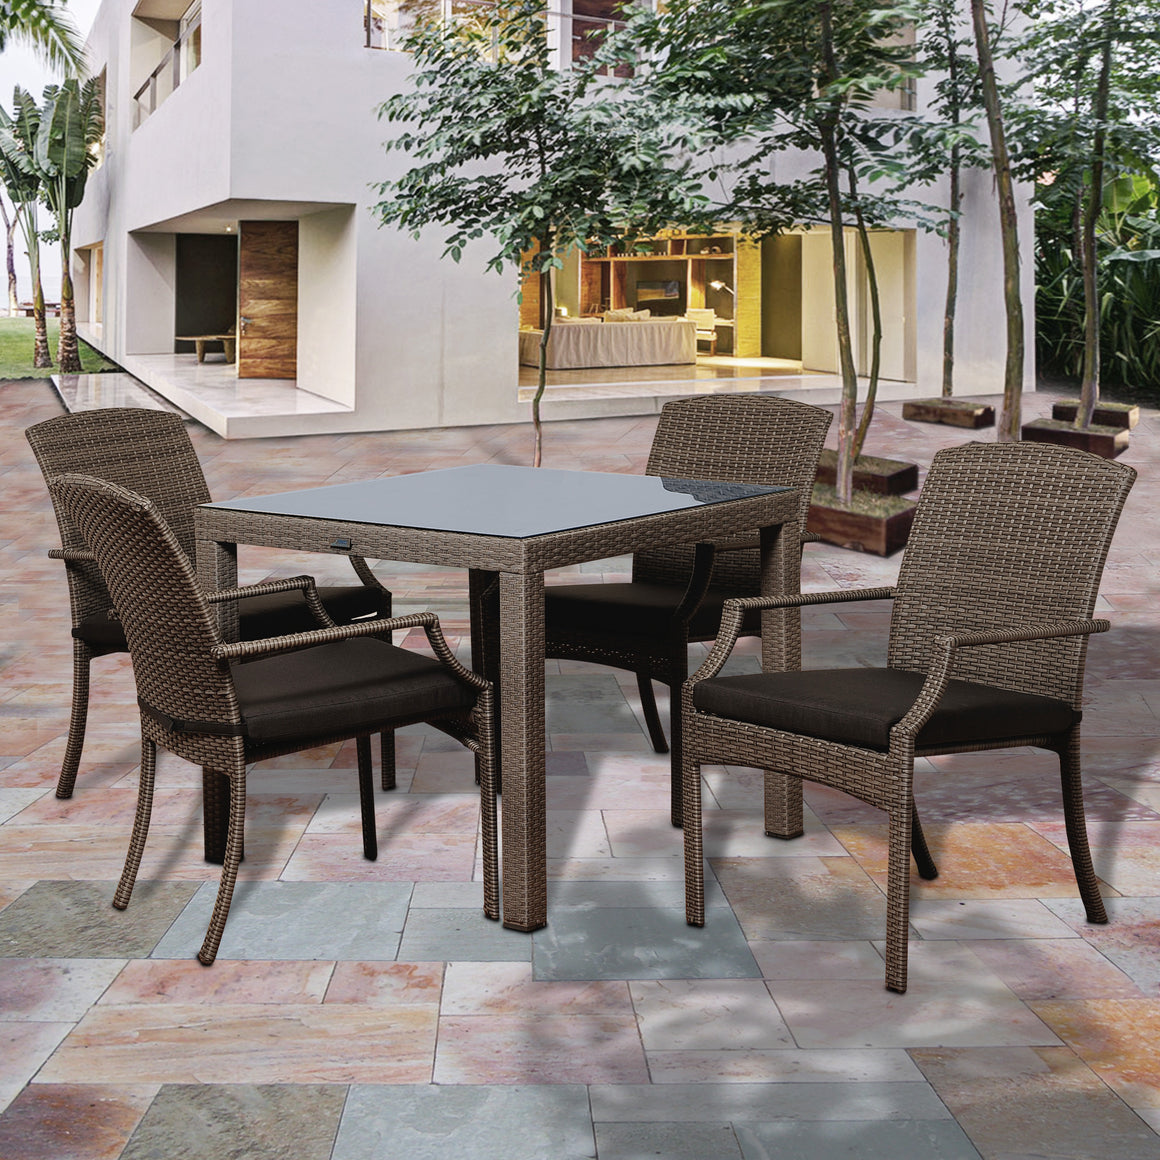 Rolland 5 Piece Grey Synthetic Wicker Square Patio Dining Set , International Home Miami- grayburd